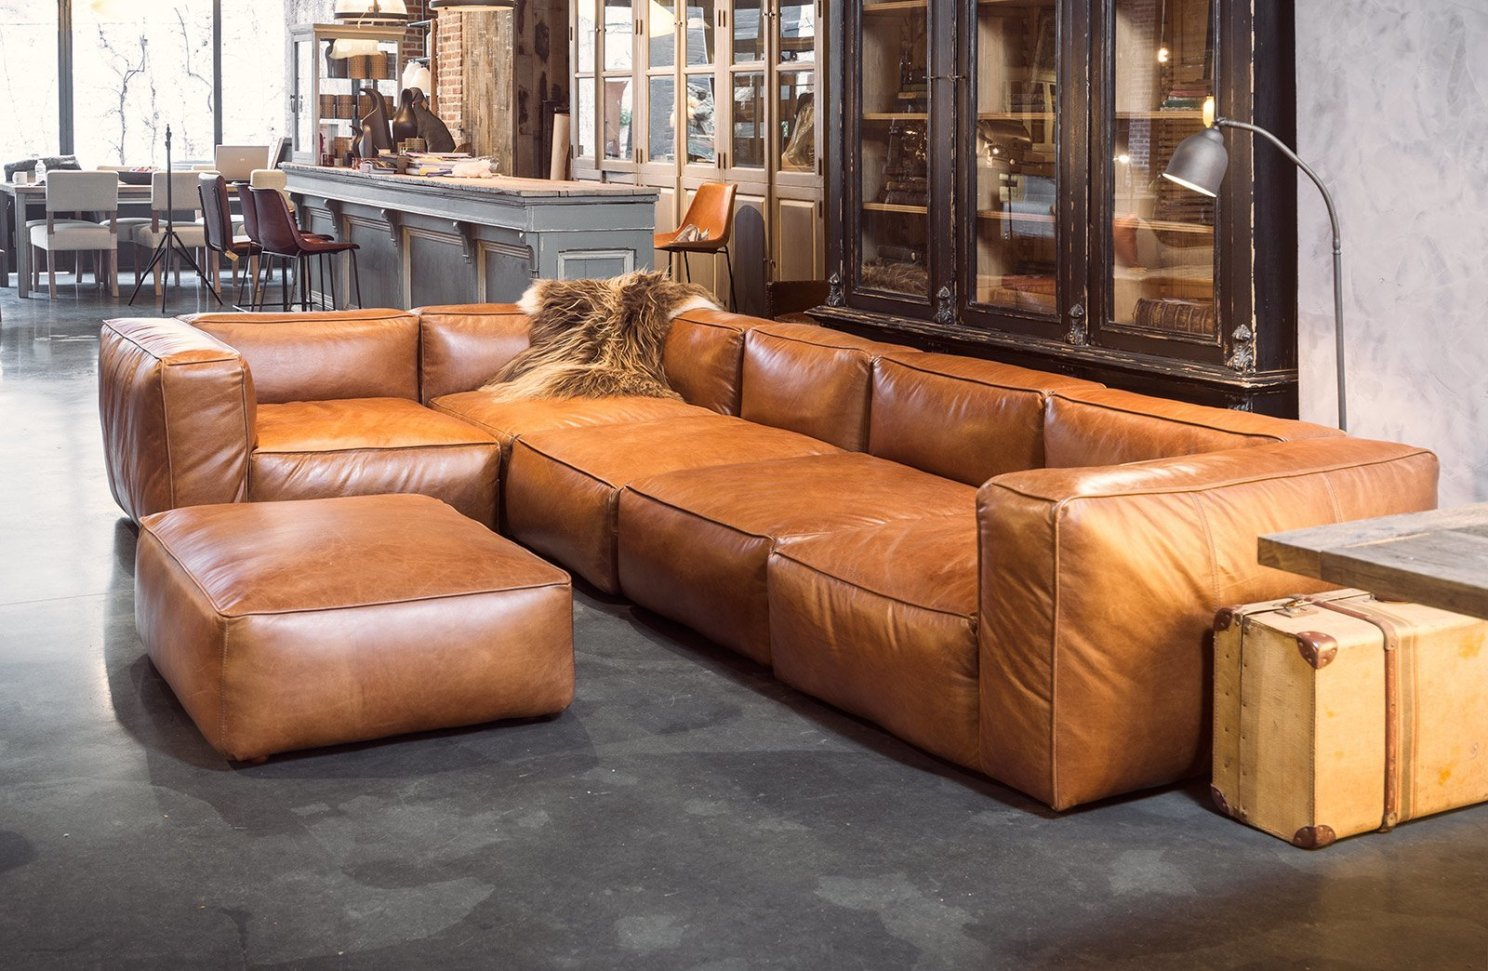 Cognac Leather Sofas Are Now On Trend For 2018 Homes